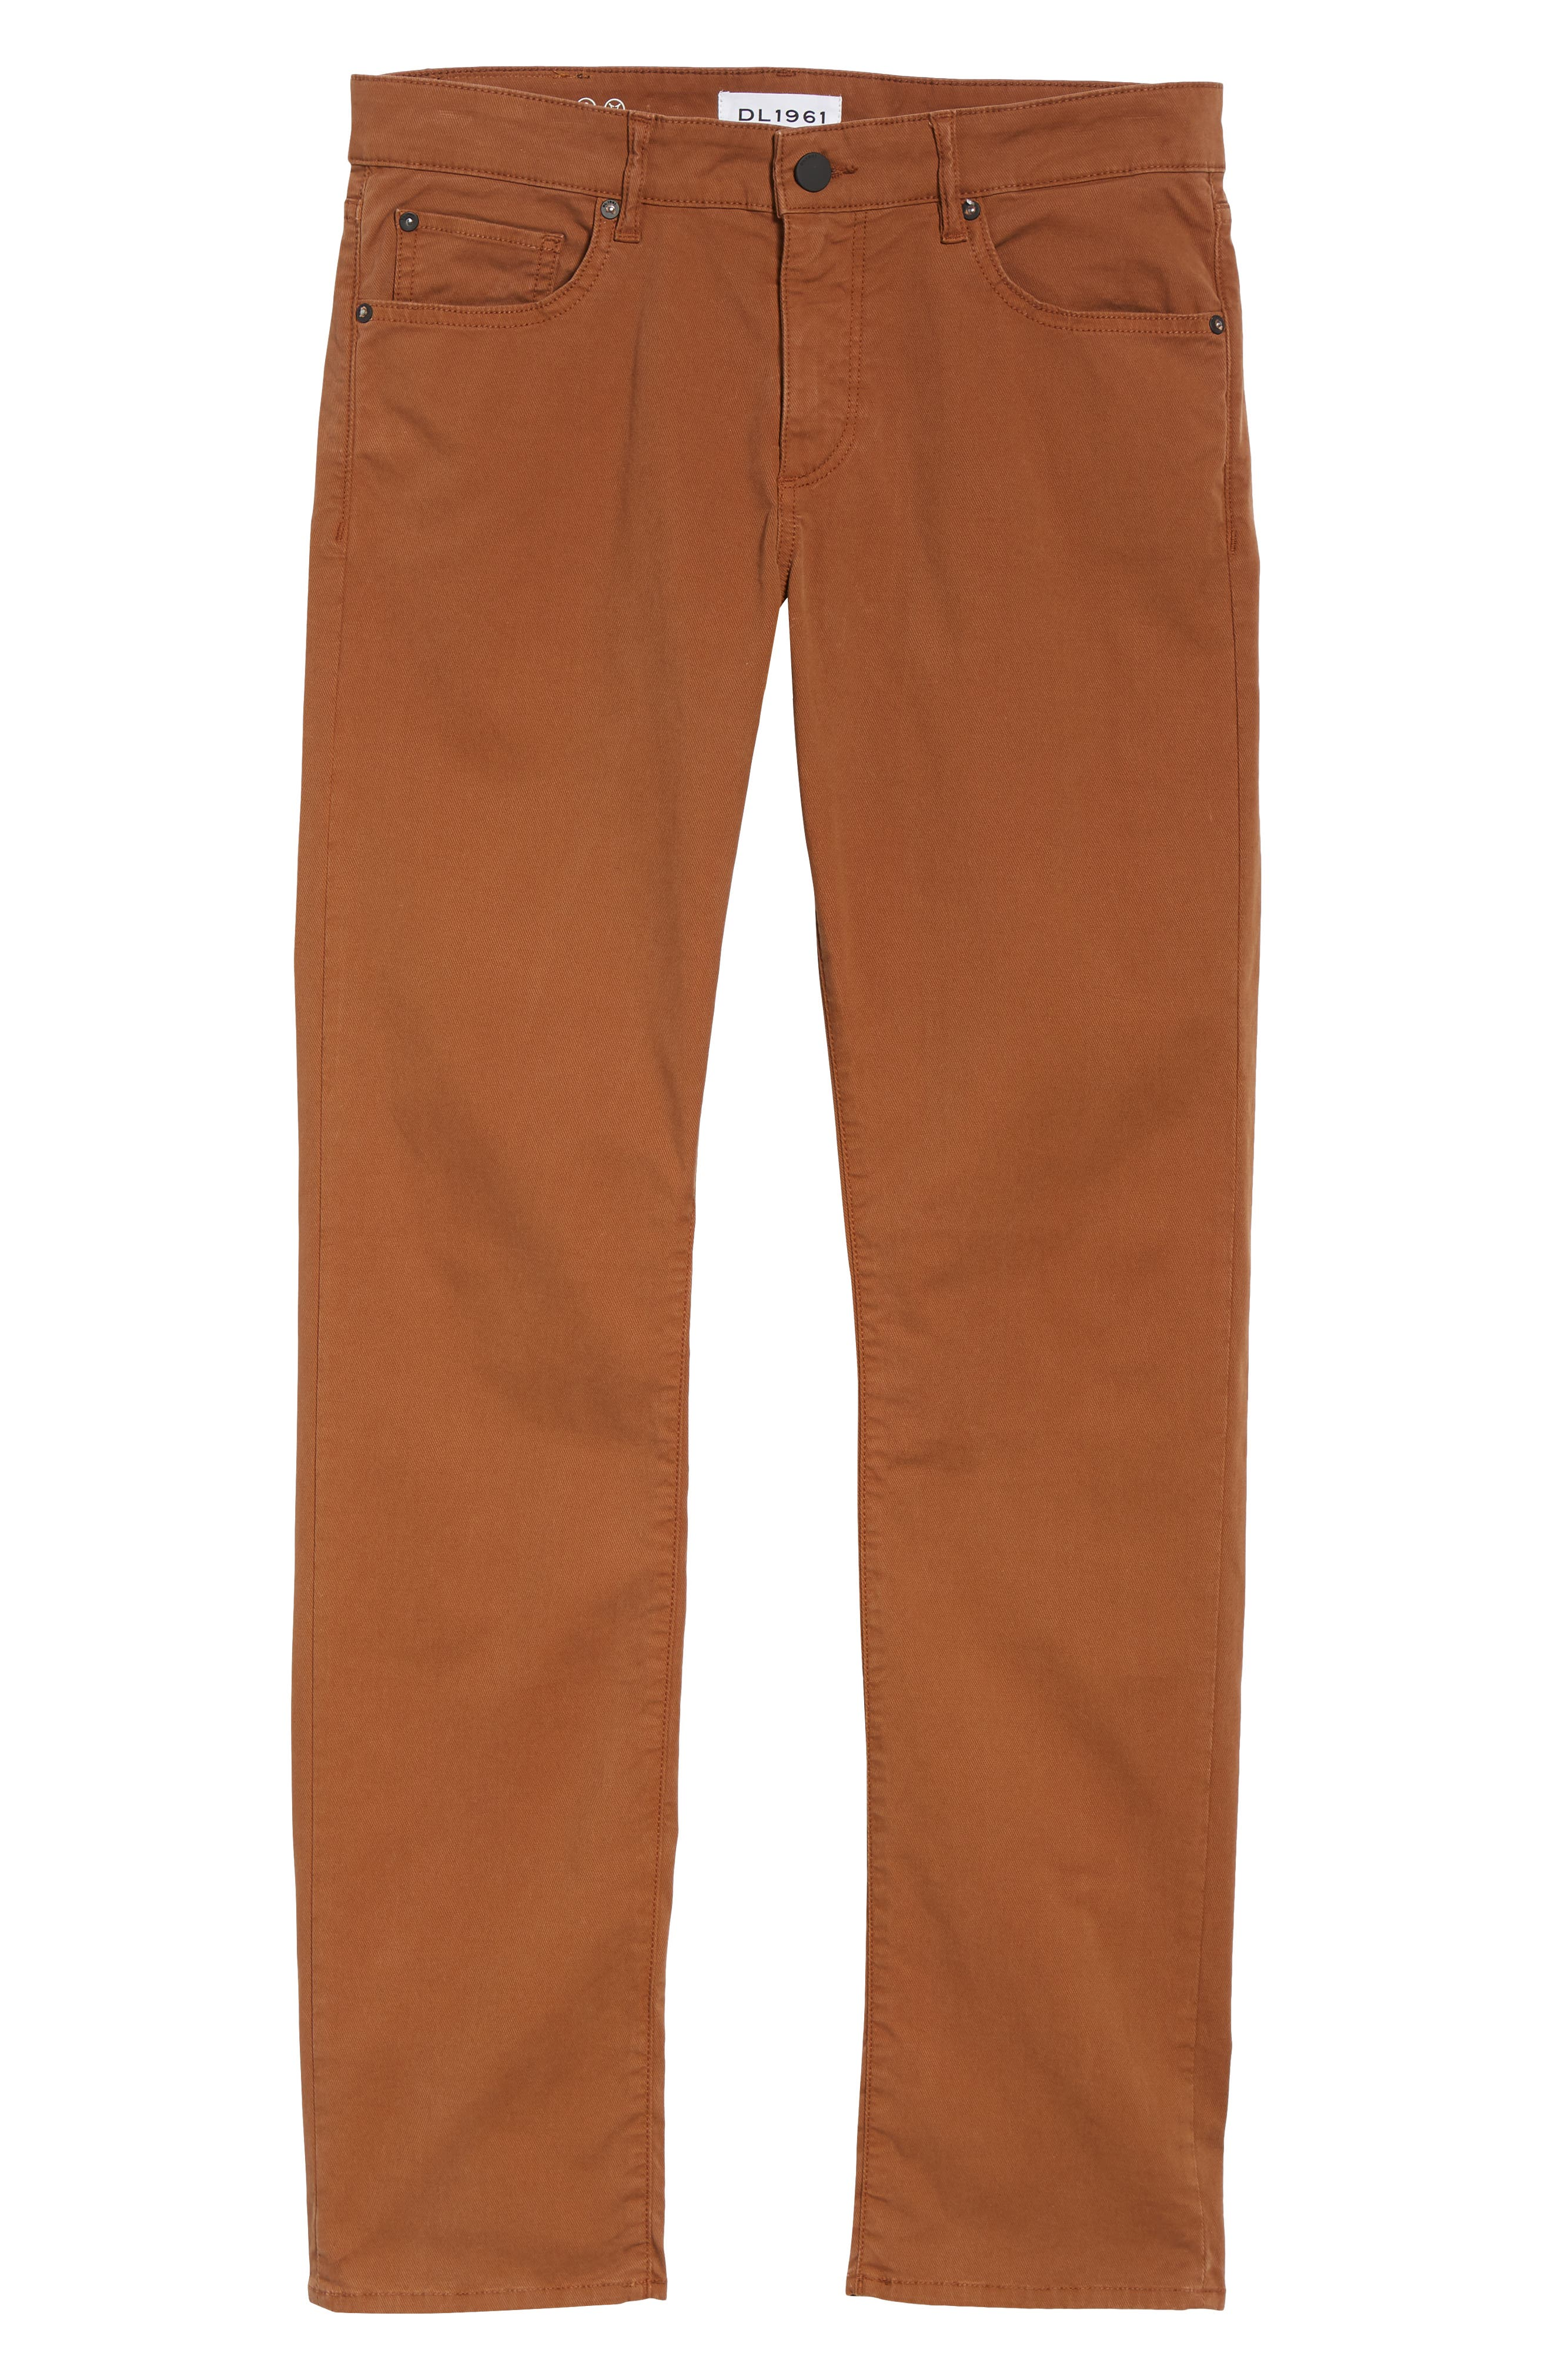 Russell Slim Straight Leg Jeans,                             Alternate thumbnail 6, color,                             TERRACOTTA